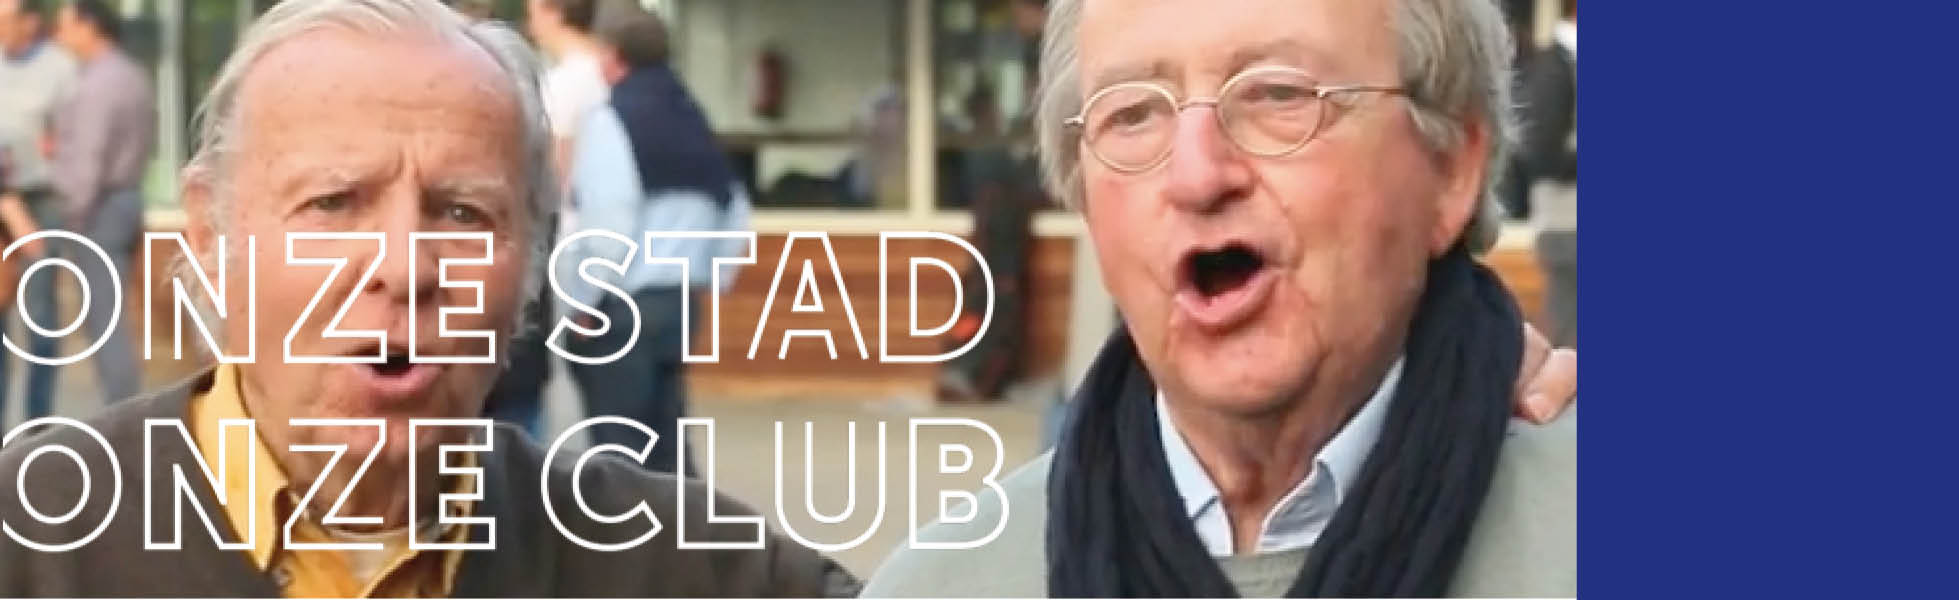 Breda_Onze Club_Tom.jpg